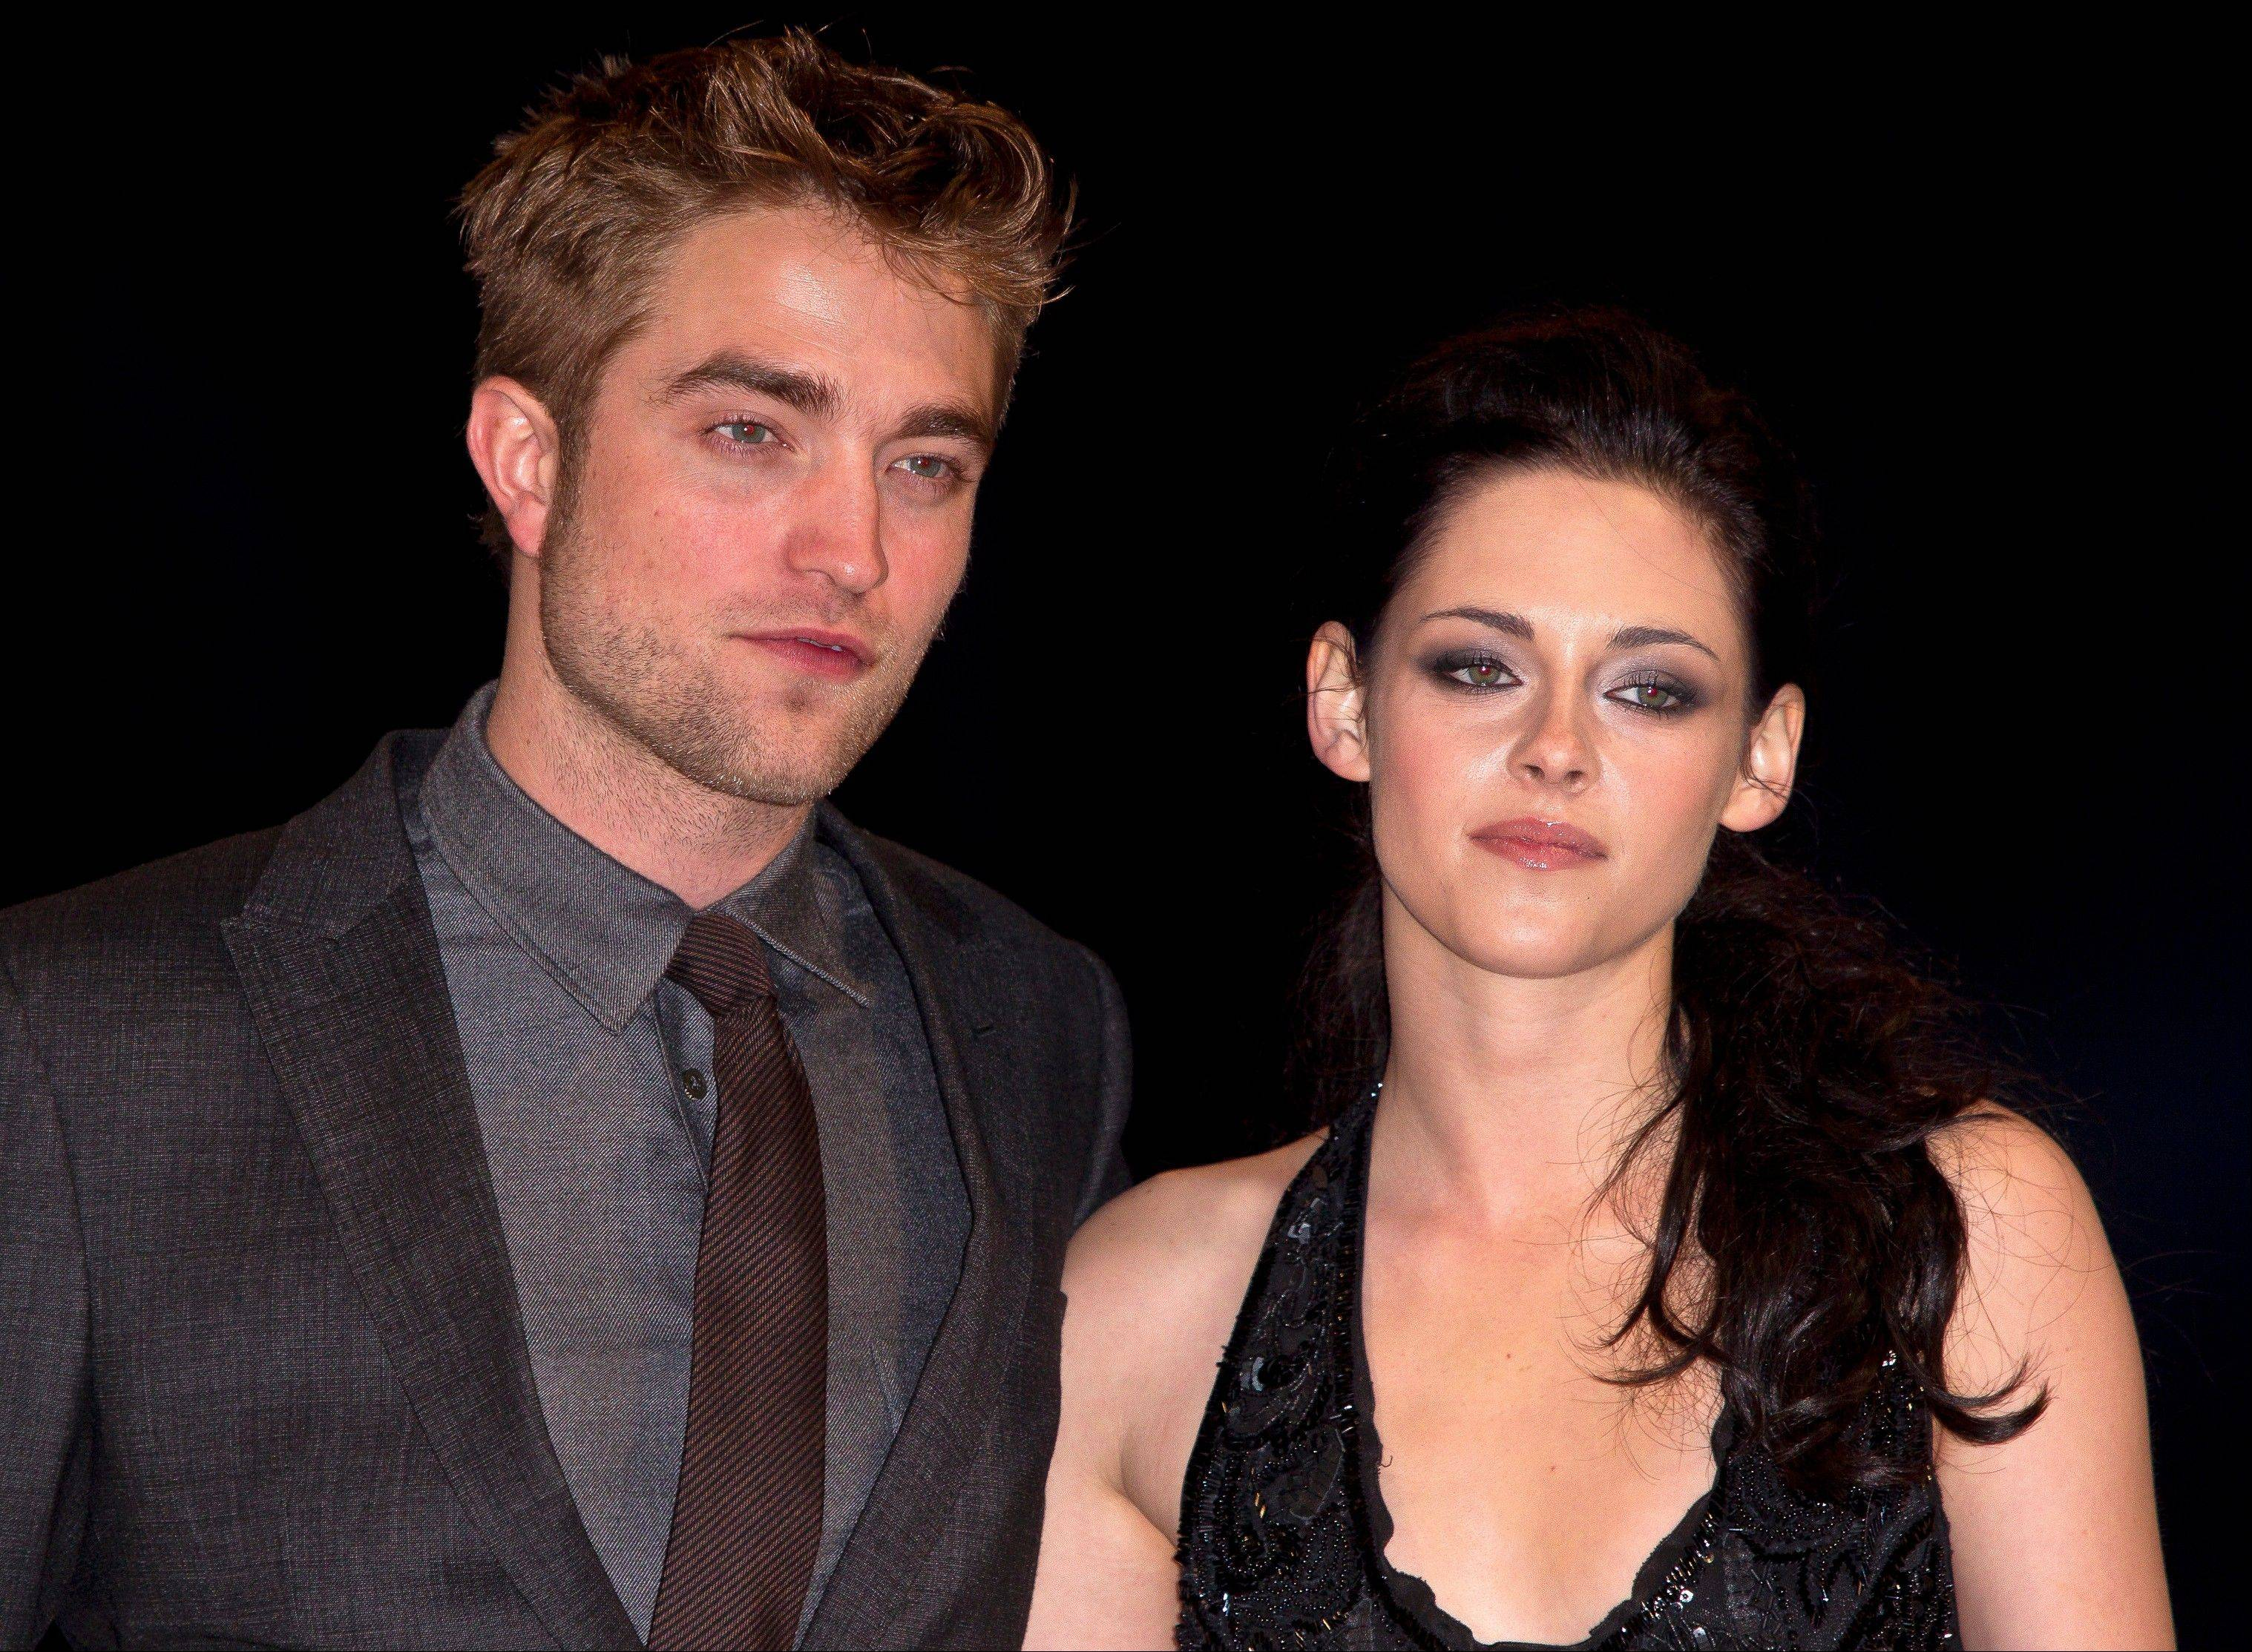 "Robert Pattinson and Kristen Stewart arrive at the UK film premiere of ""Twilight Breaking Dawn Part 1"" at Westfield Stratford in east London. On Wednesday, Kristen Stewart and director Rupert Sanders apologized publicly to their loved ones following reports of infidelity."